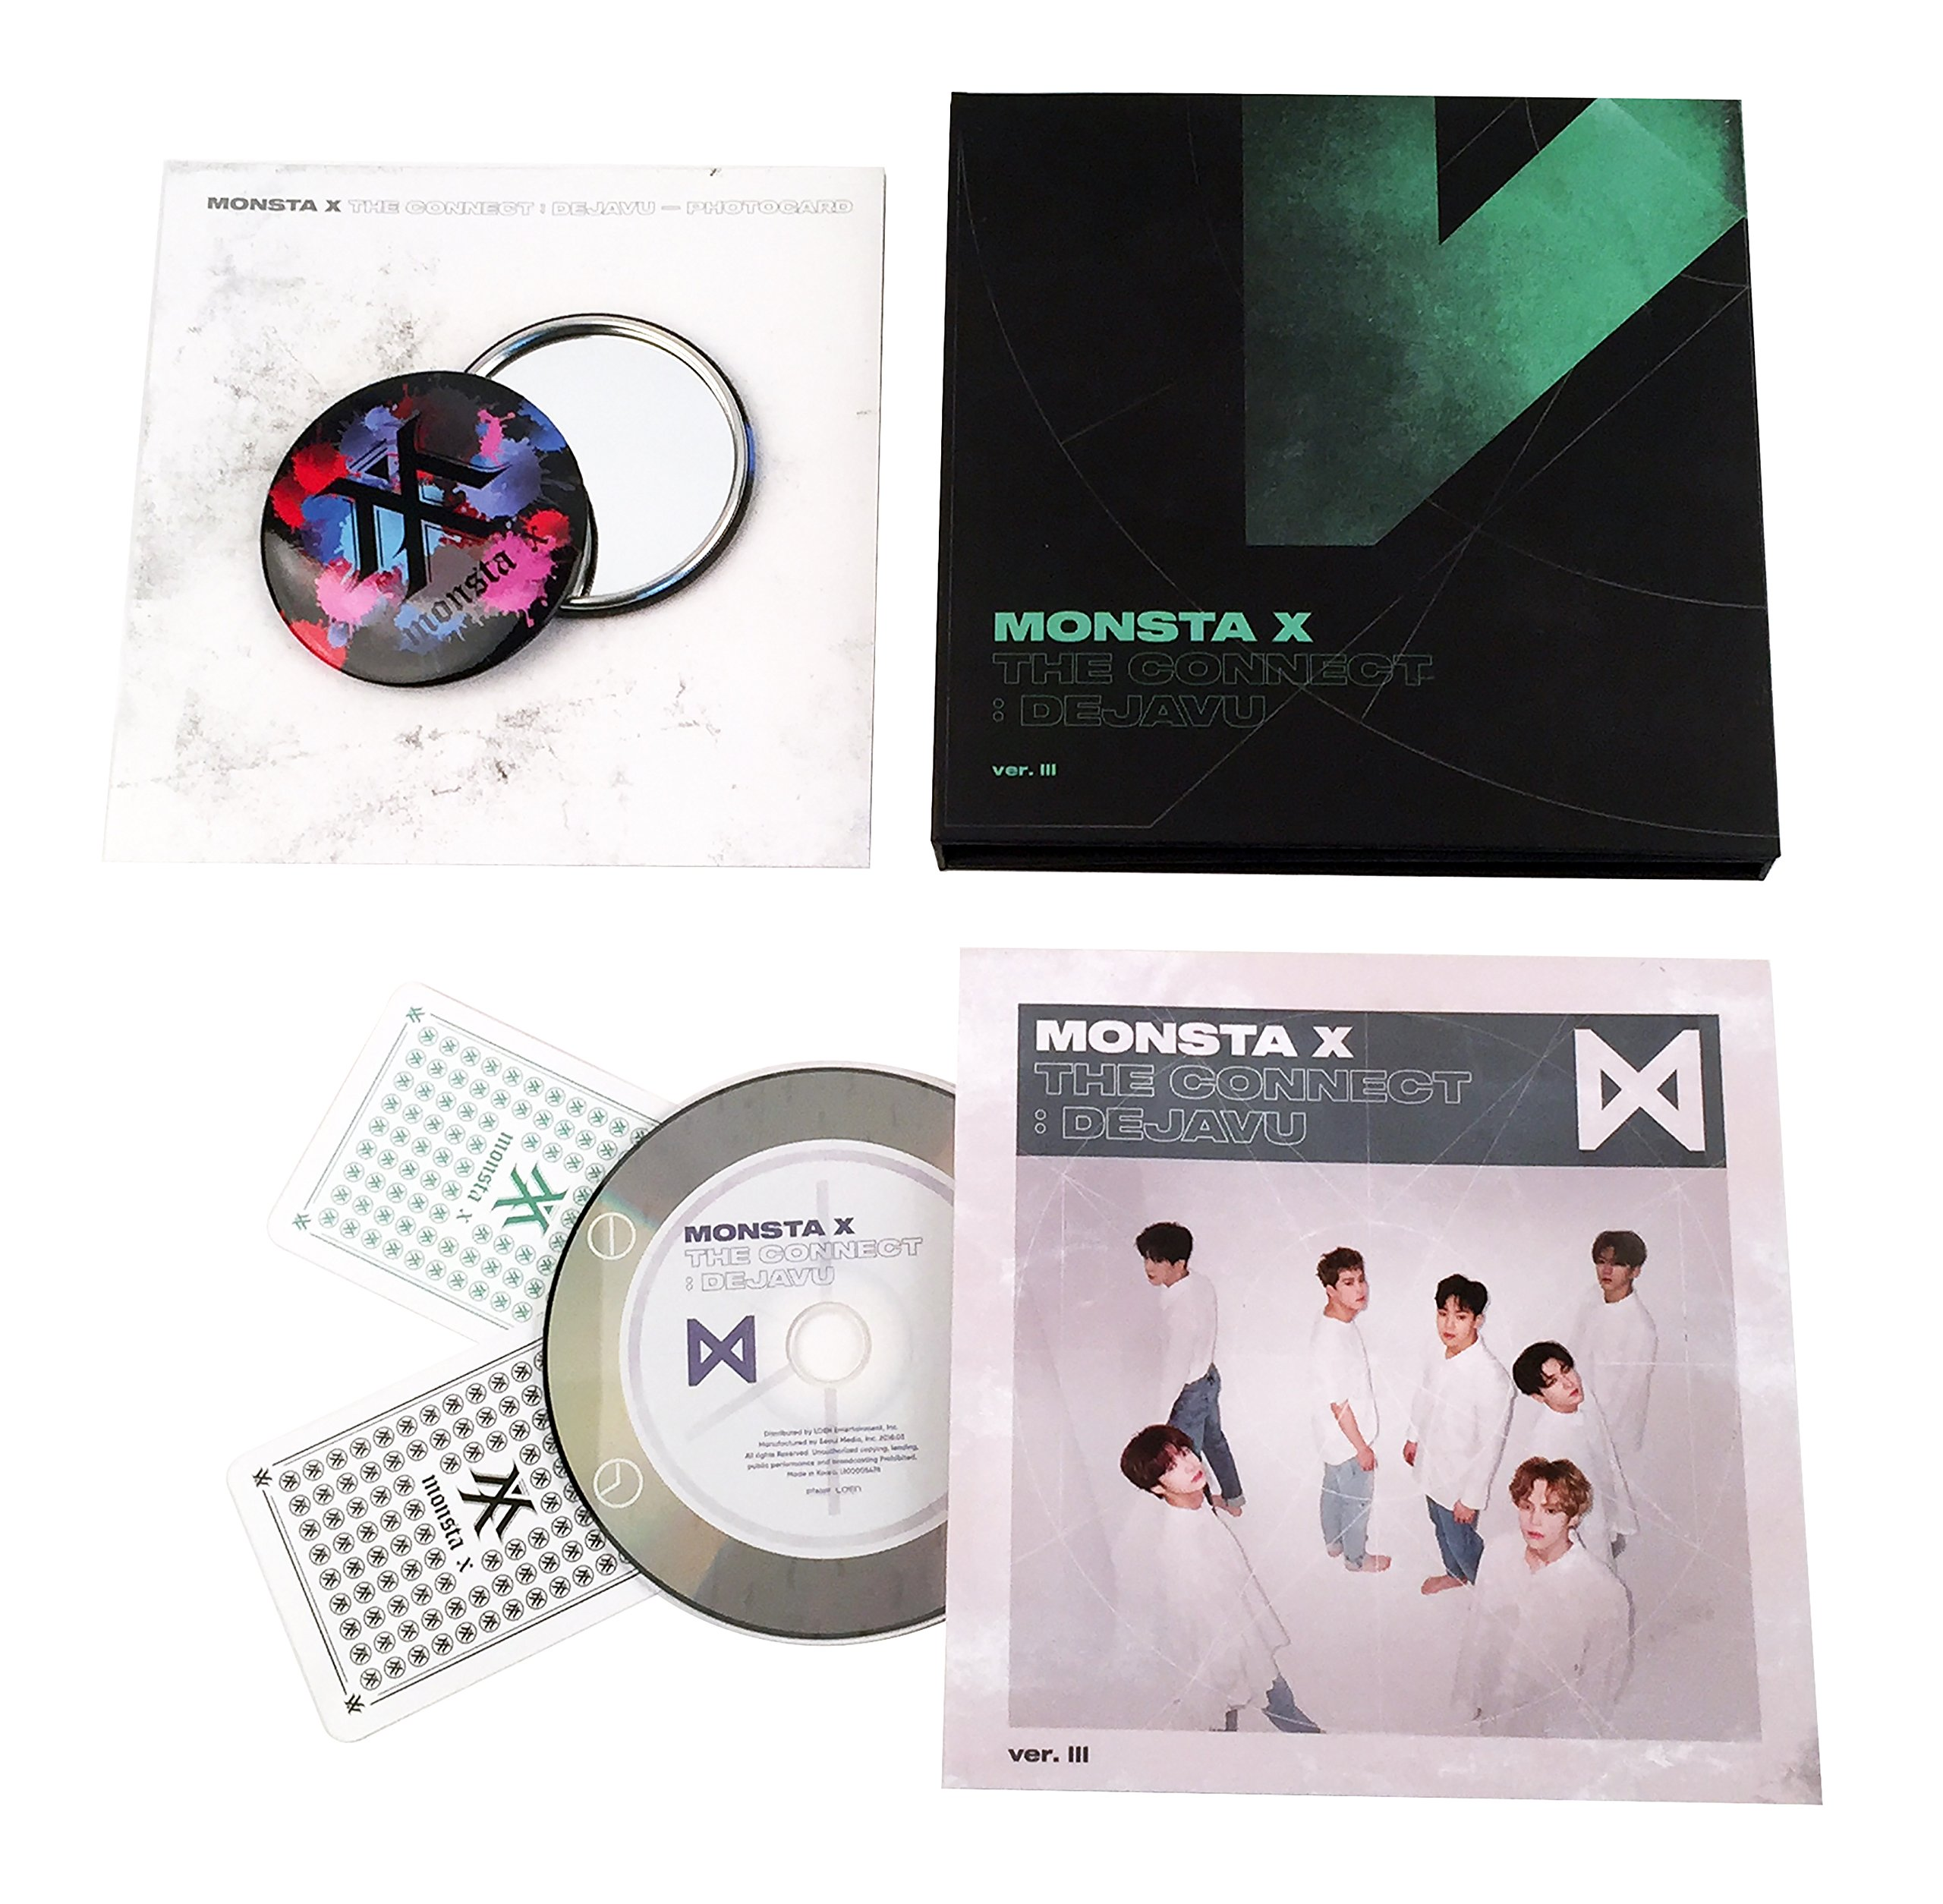 THE CONNECT : DEJAVU [ Ver. III ] - MONSTA X Album CD + Booklet + 2 Photocards + FREE GIFT / K-POP Sealed by Loen